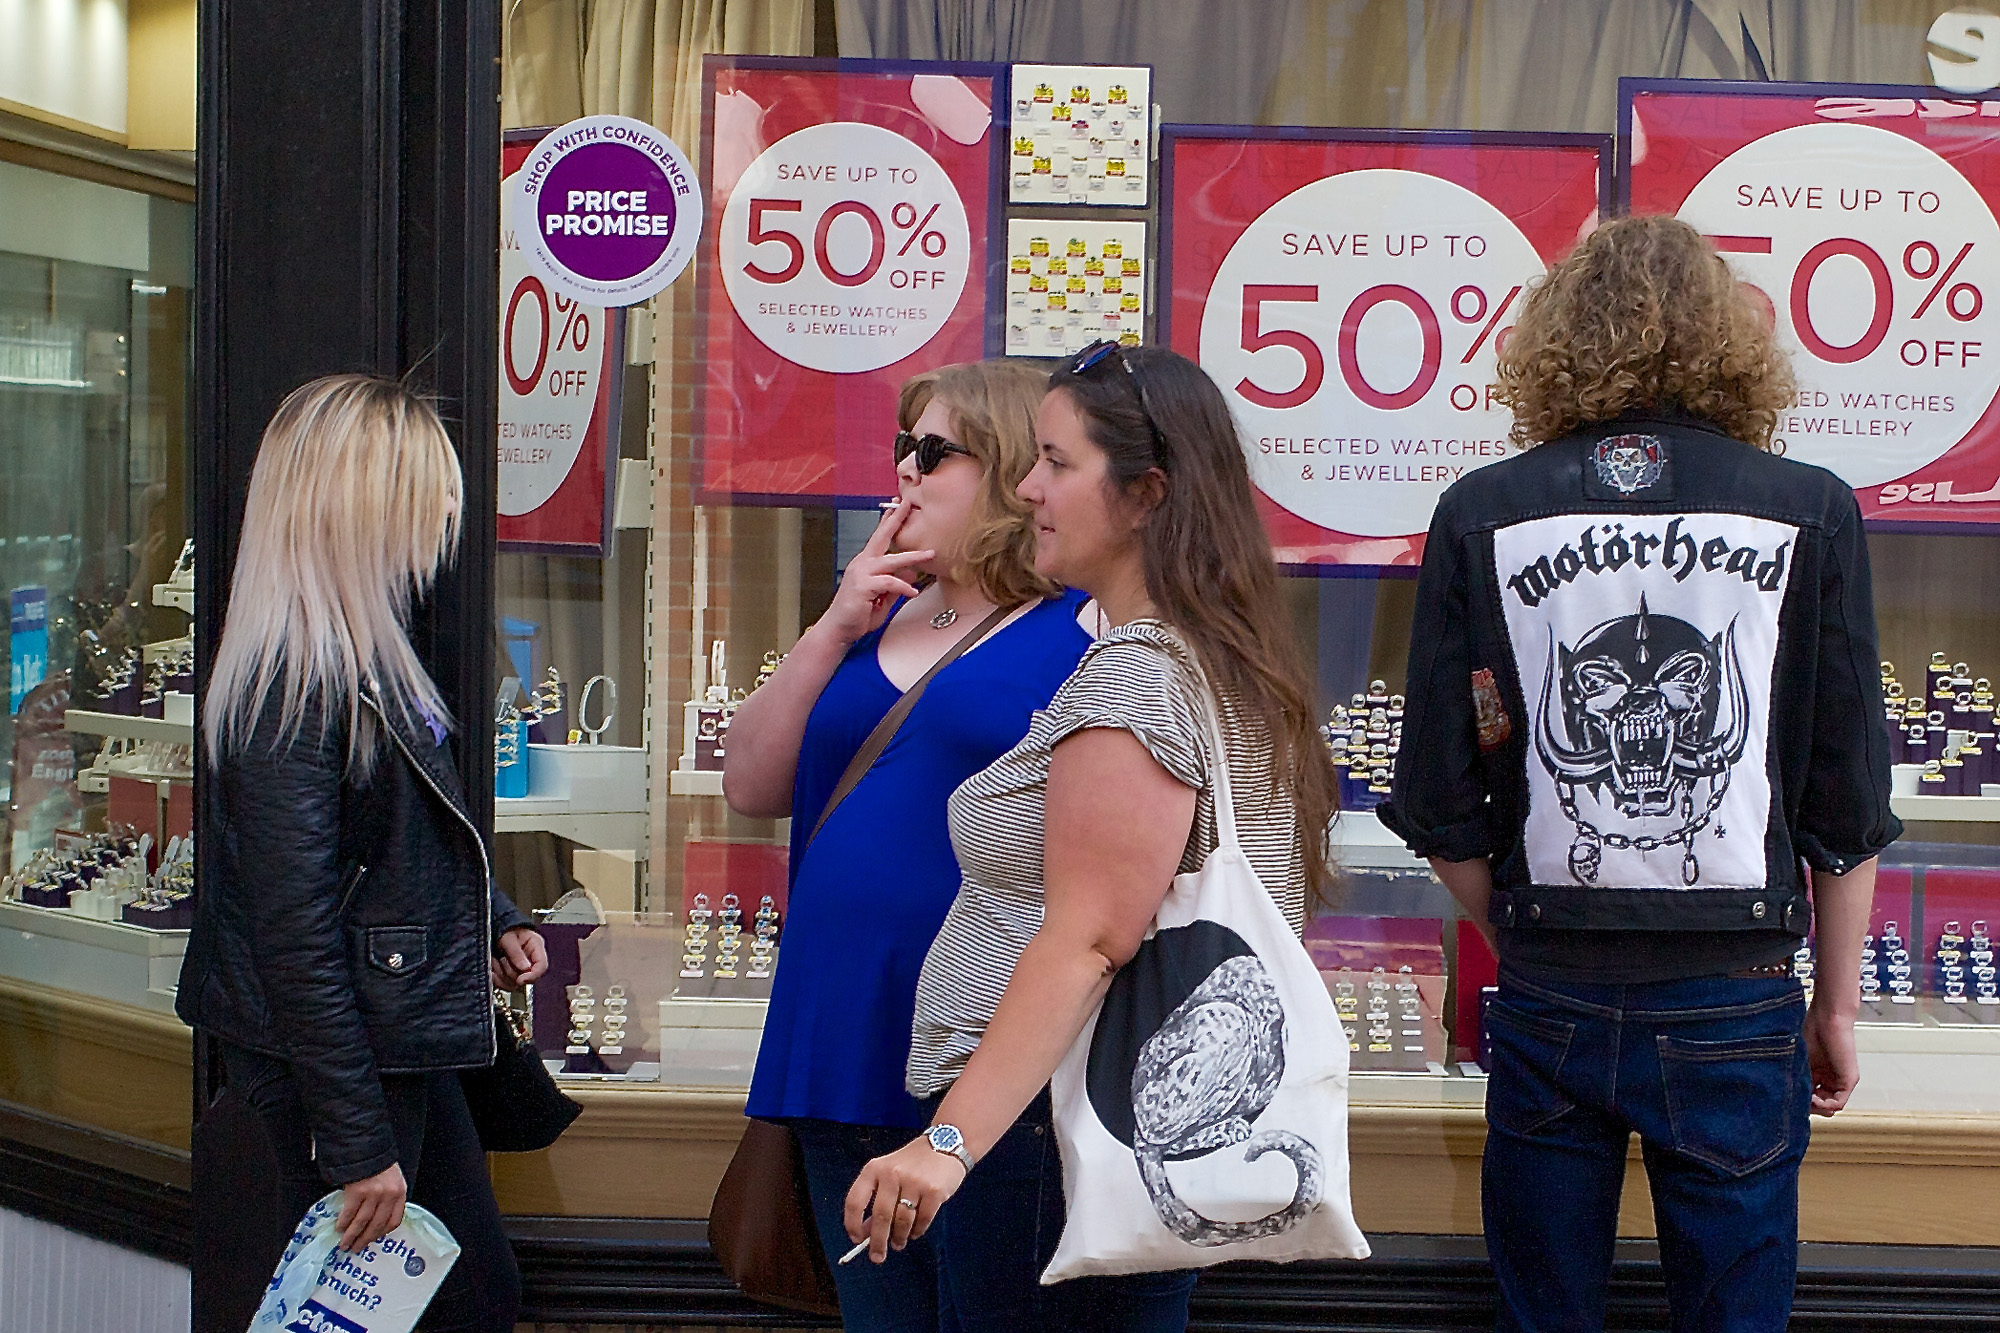 Jeweller's shop window being browsed by heavy metal fan, while three women walk past